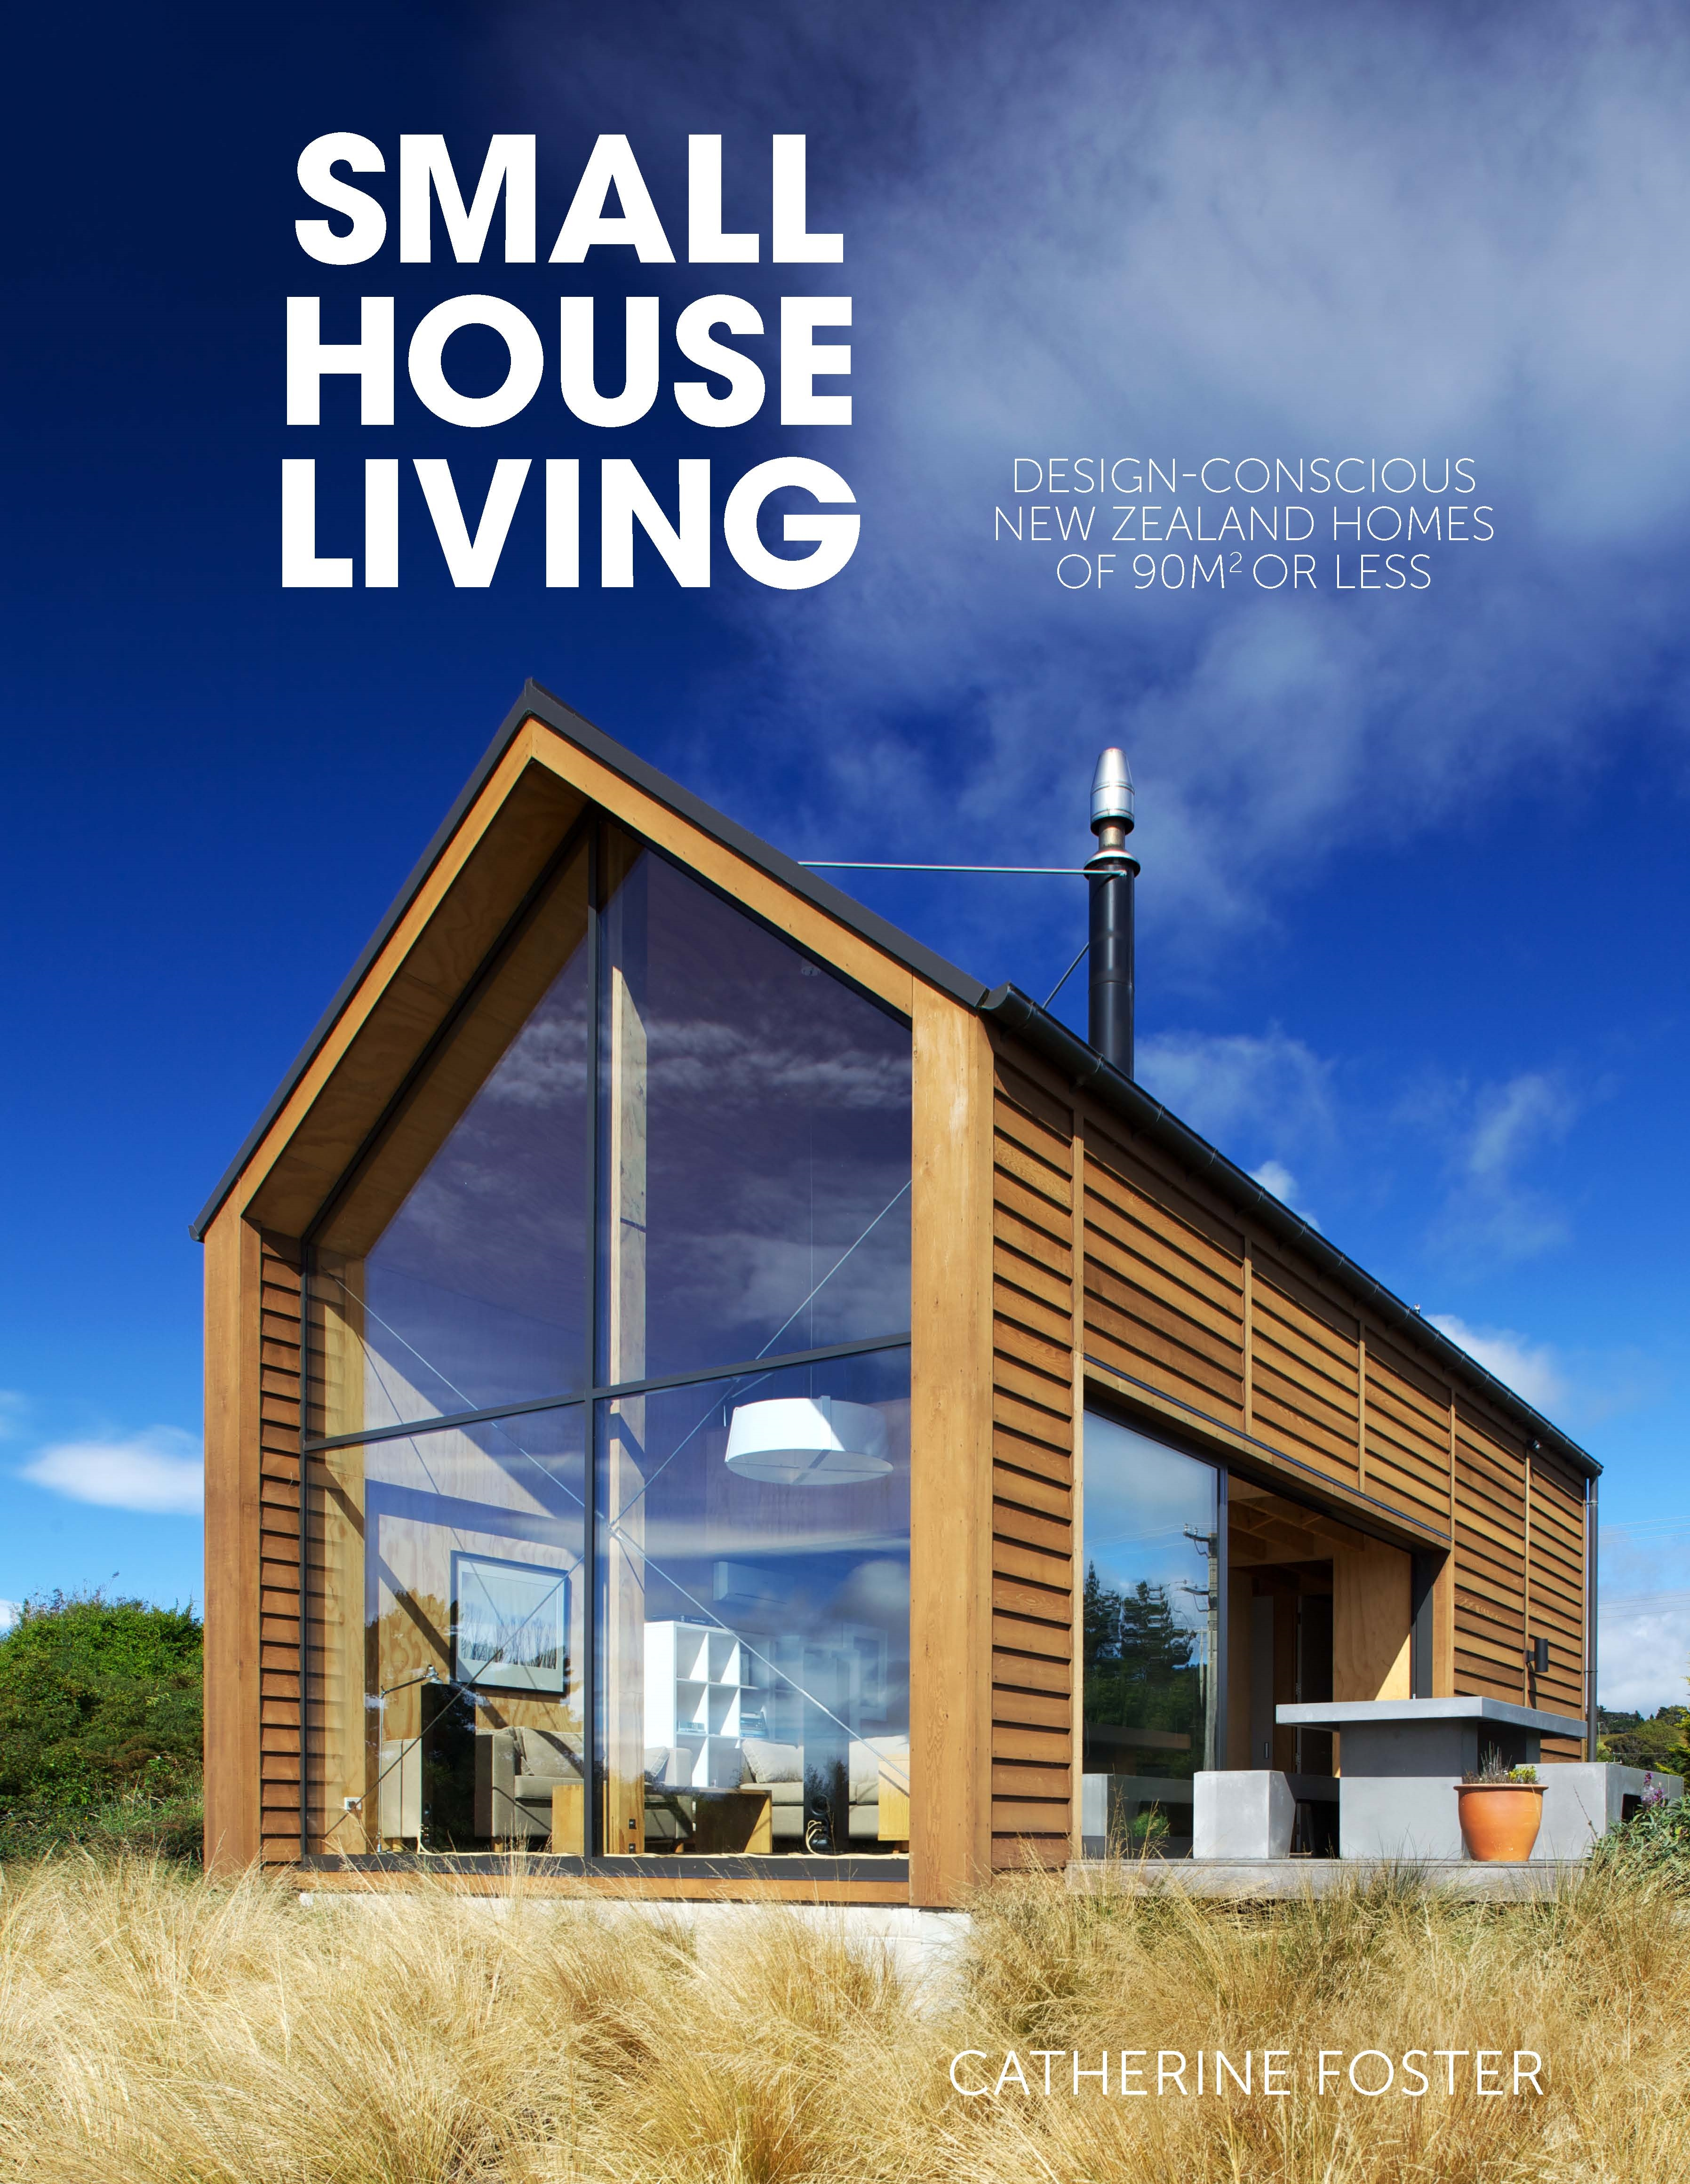 Small house living penguin books new zealand for Small house design books